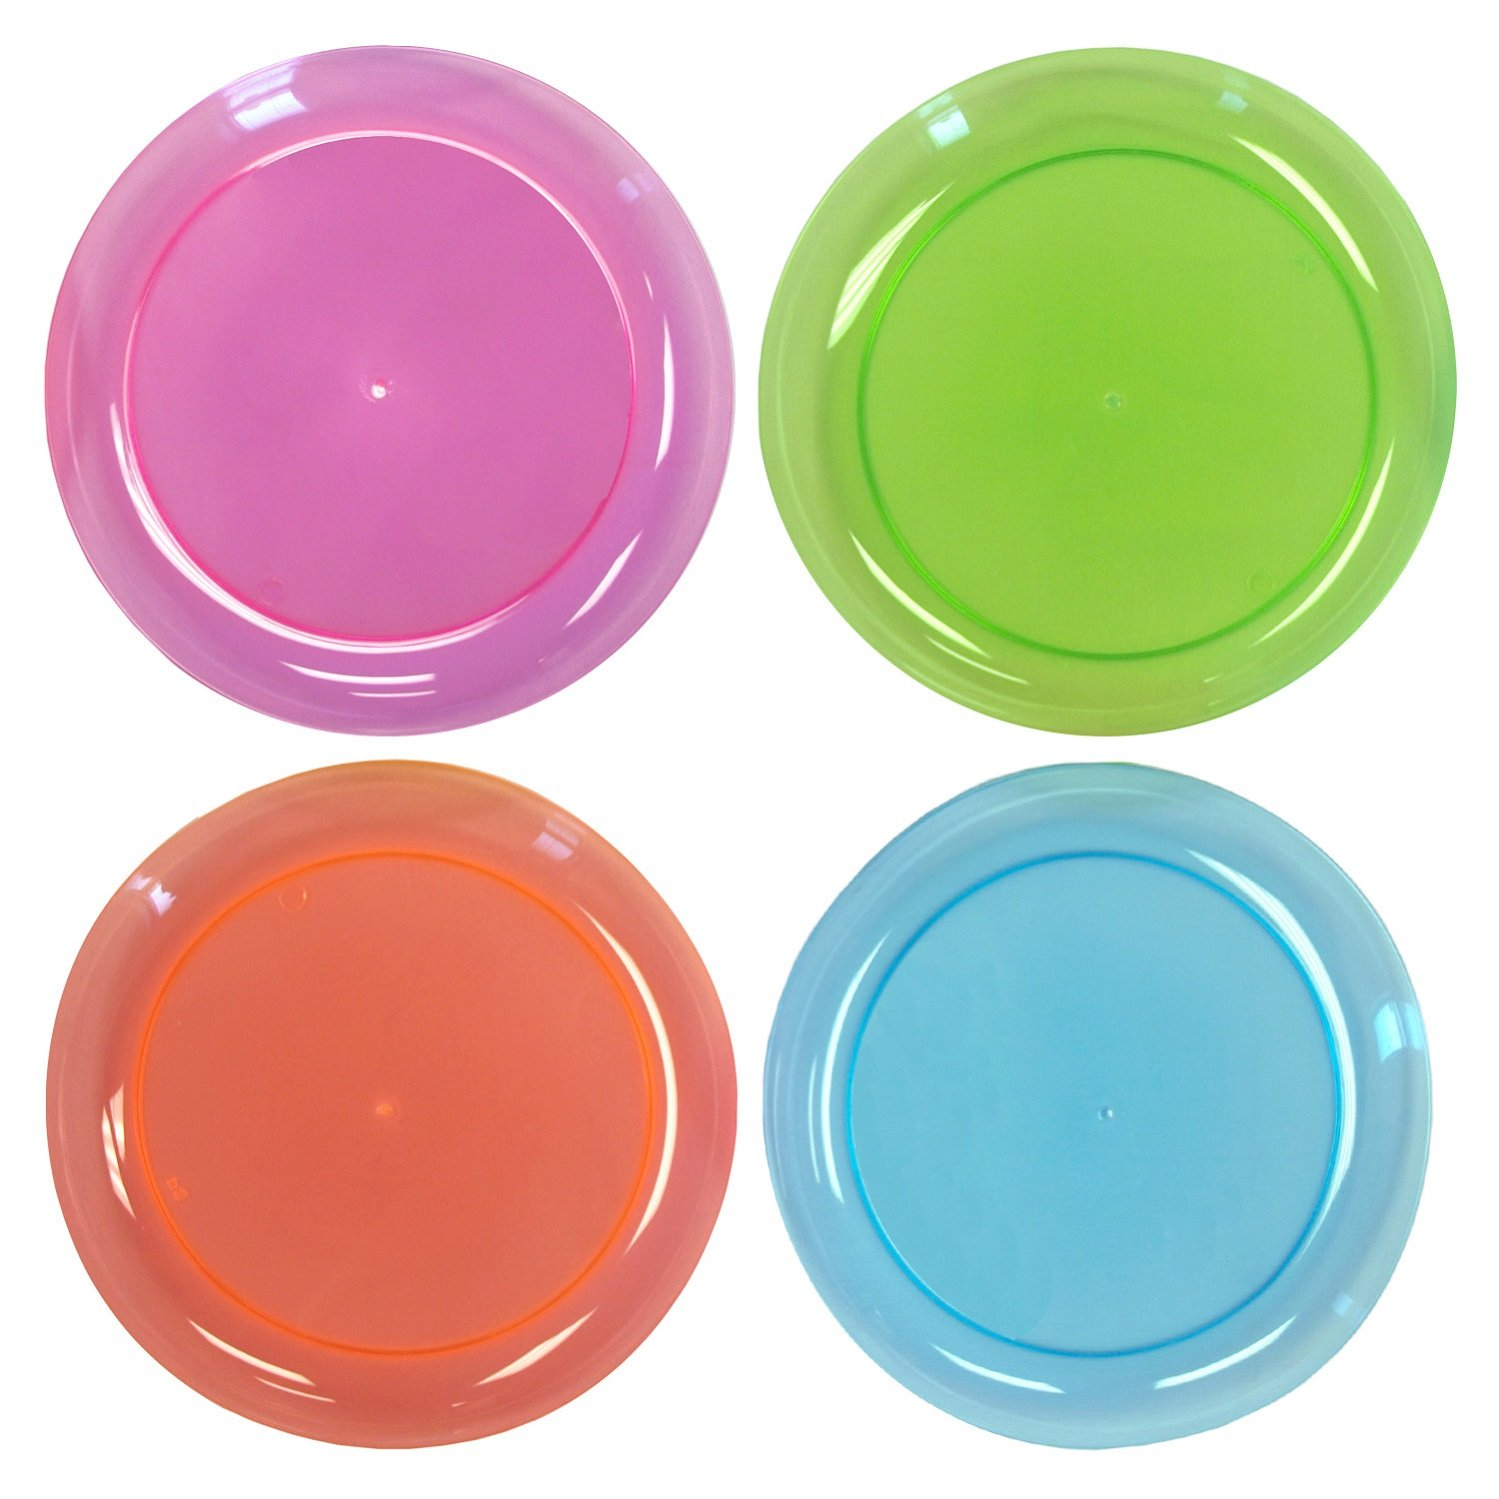 Image Gallery Toy Plates